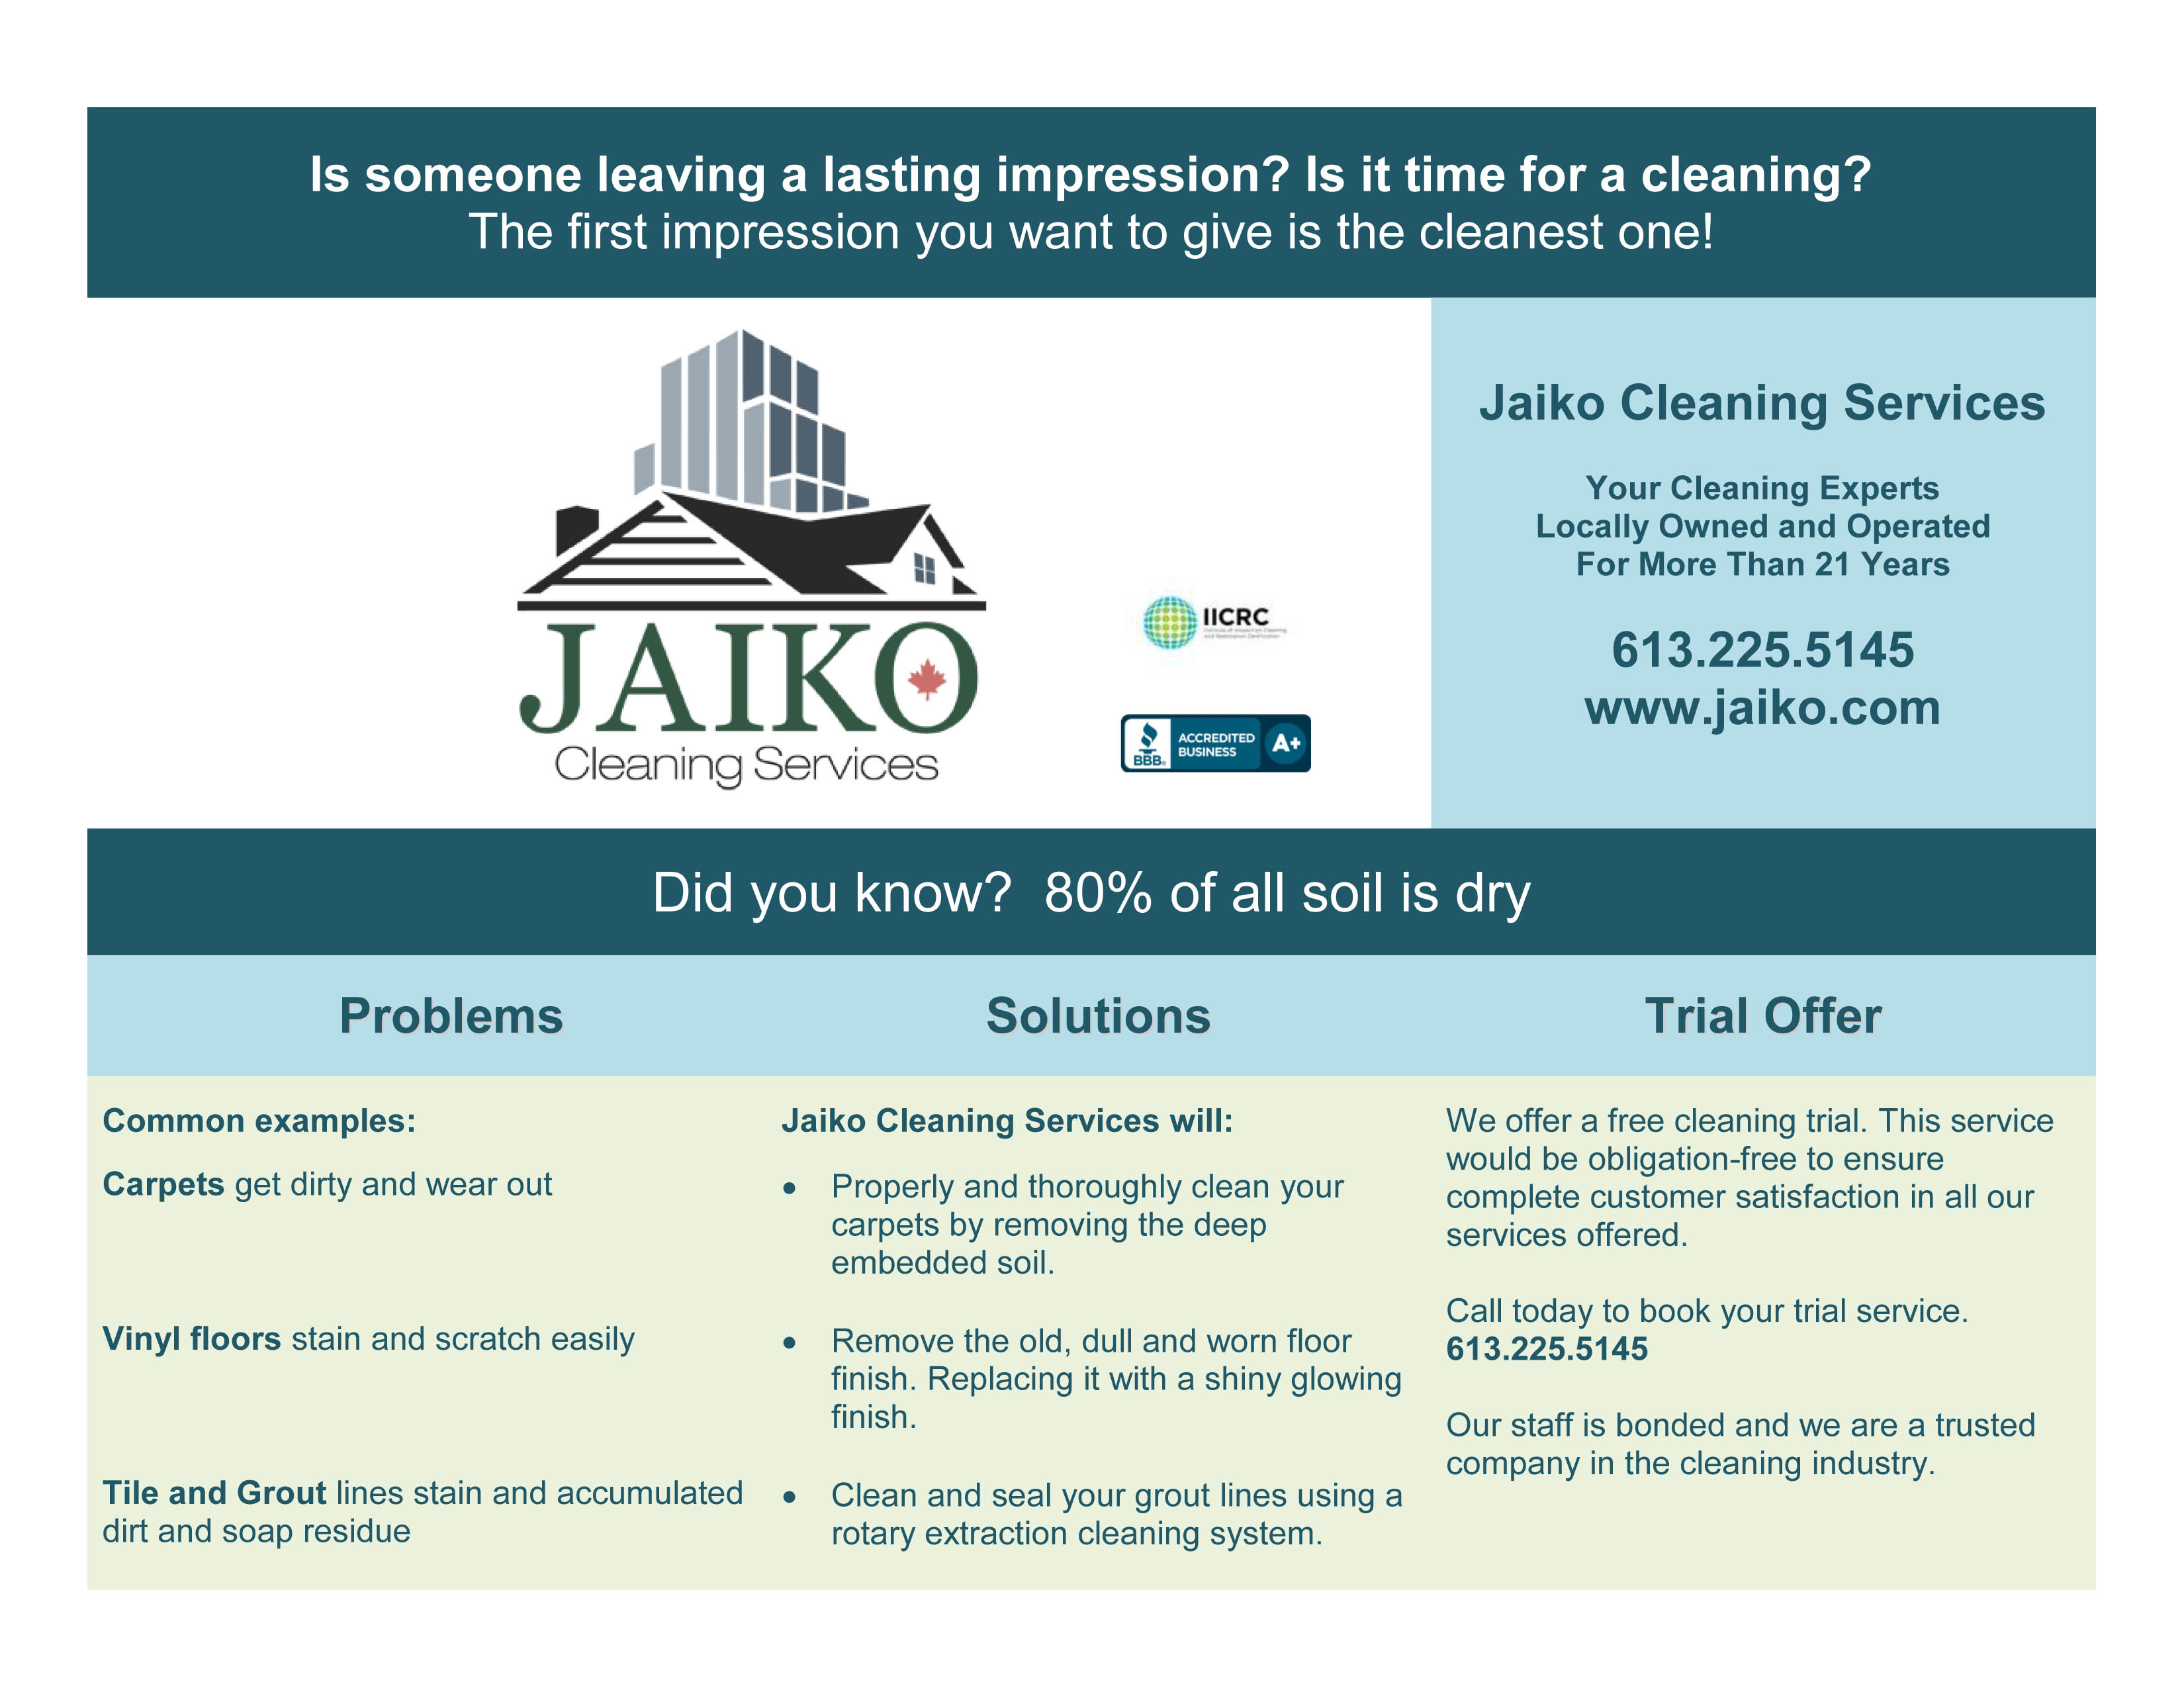 Free cleaning trial